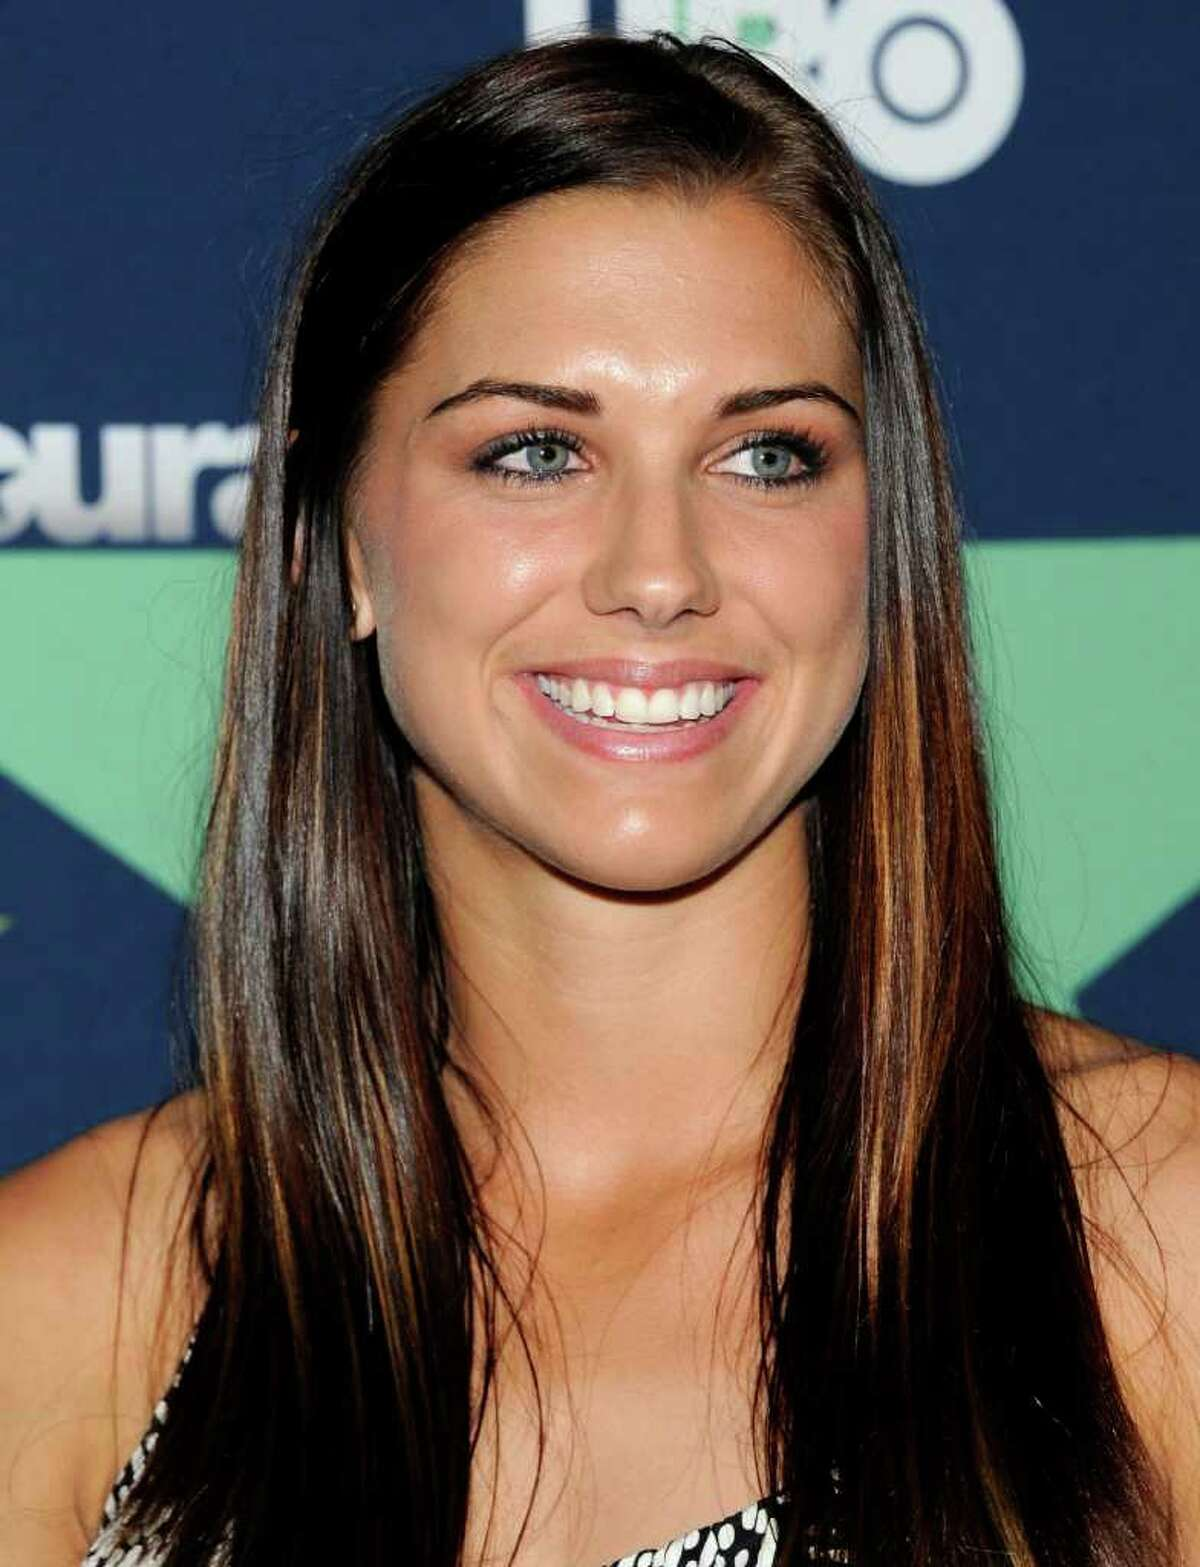 U.S. Women's Soccer team player Alex Morgan attends the final season premiere of 'Entourage' at the Beacon Theatre on Tuesday, July 19, 2011 in New York.